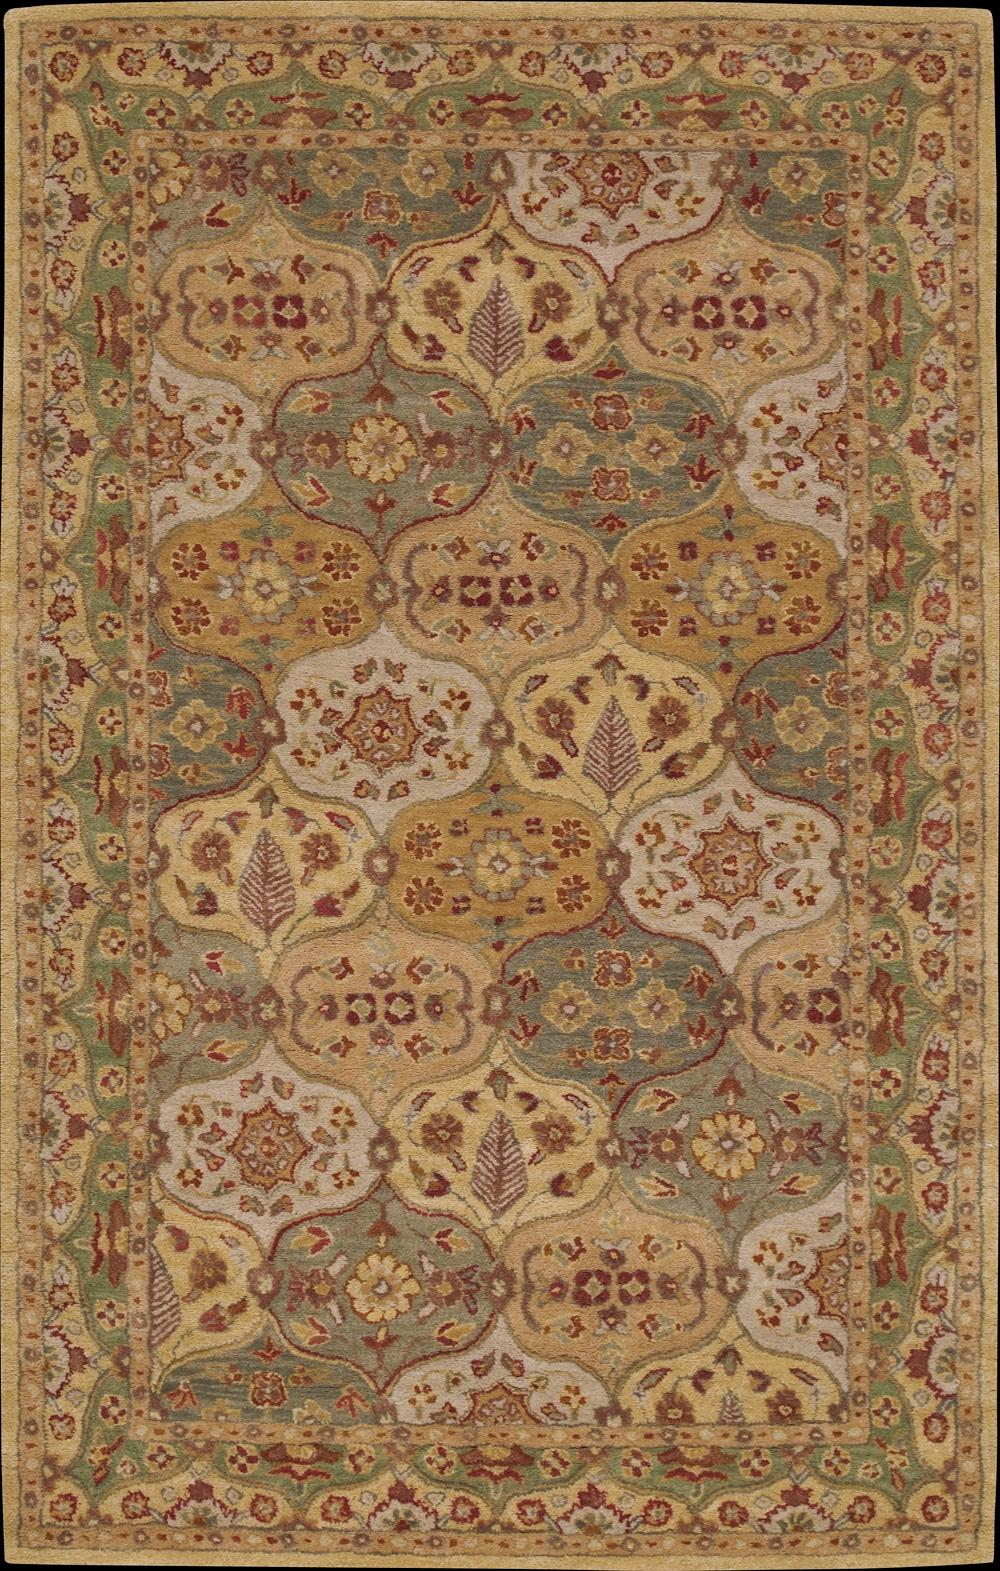 Nourison India House Area Rug 5' x 8' - Item Number: 4444